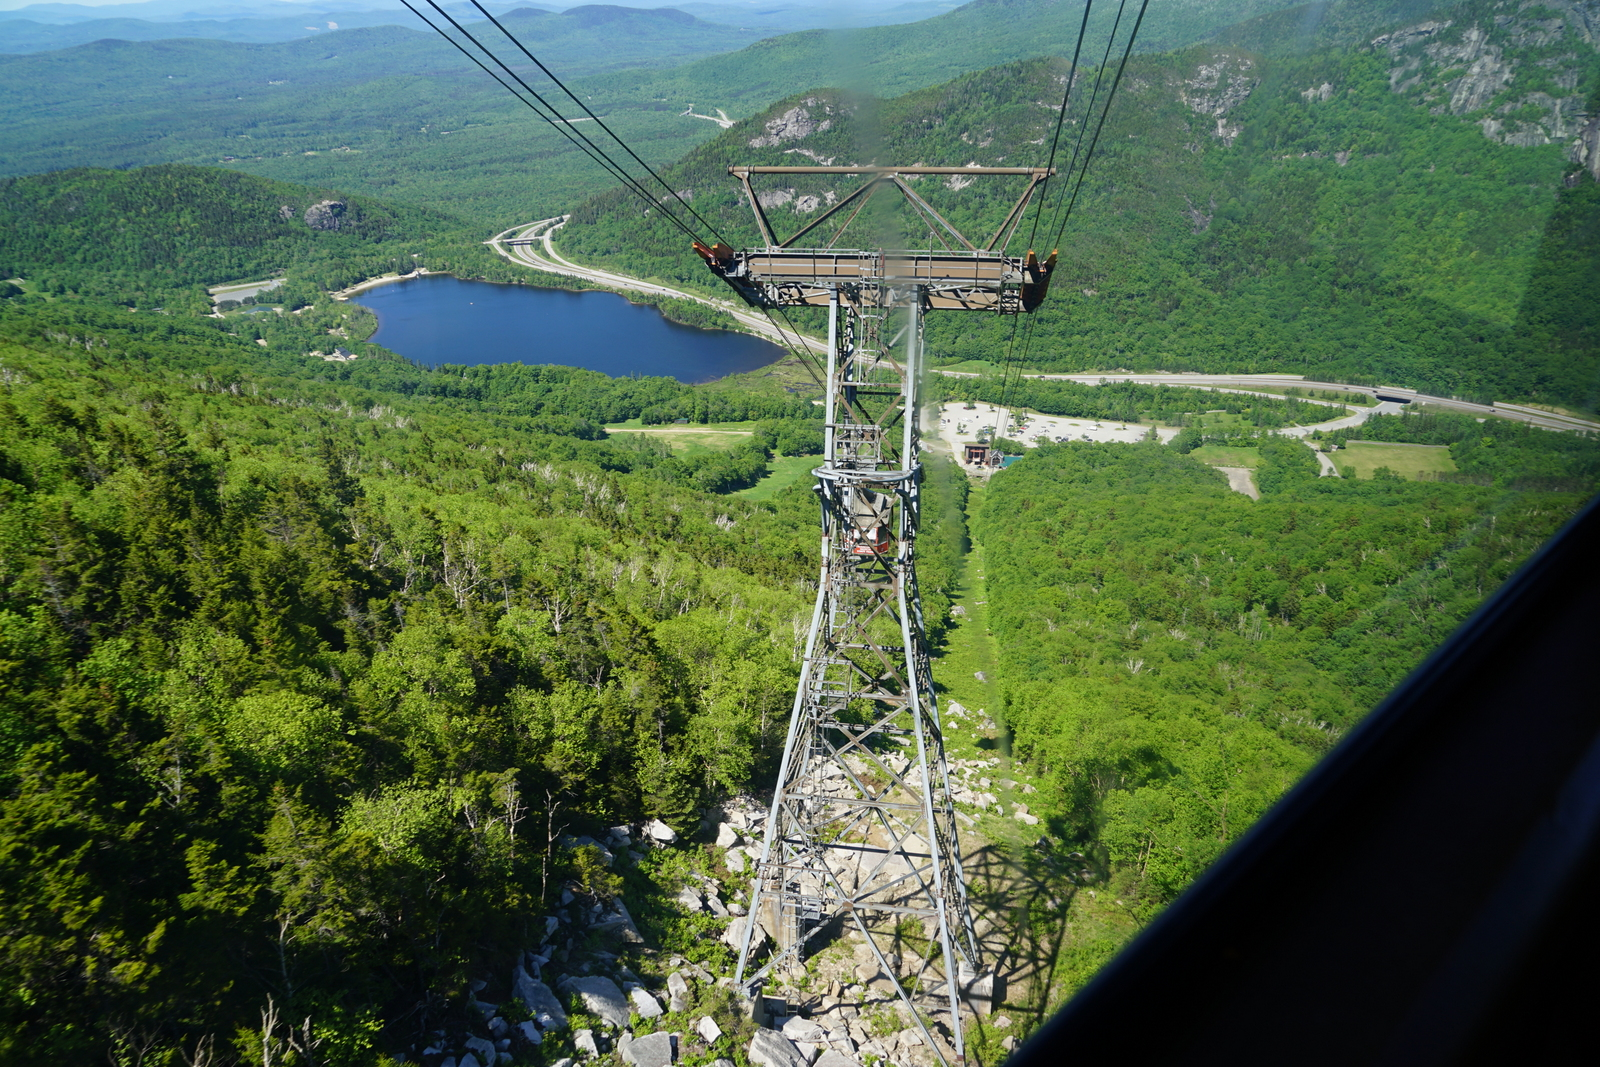 Cannon Aerial Tramway Franconia Notch State Park New